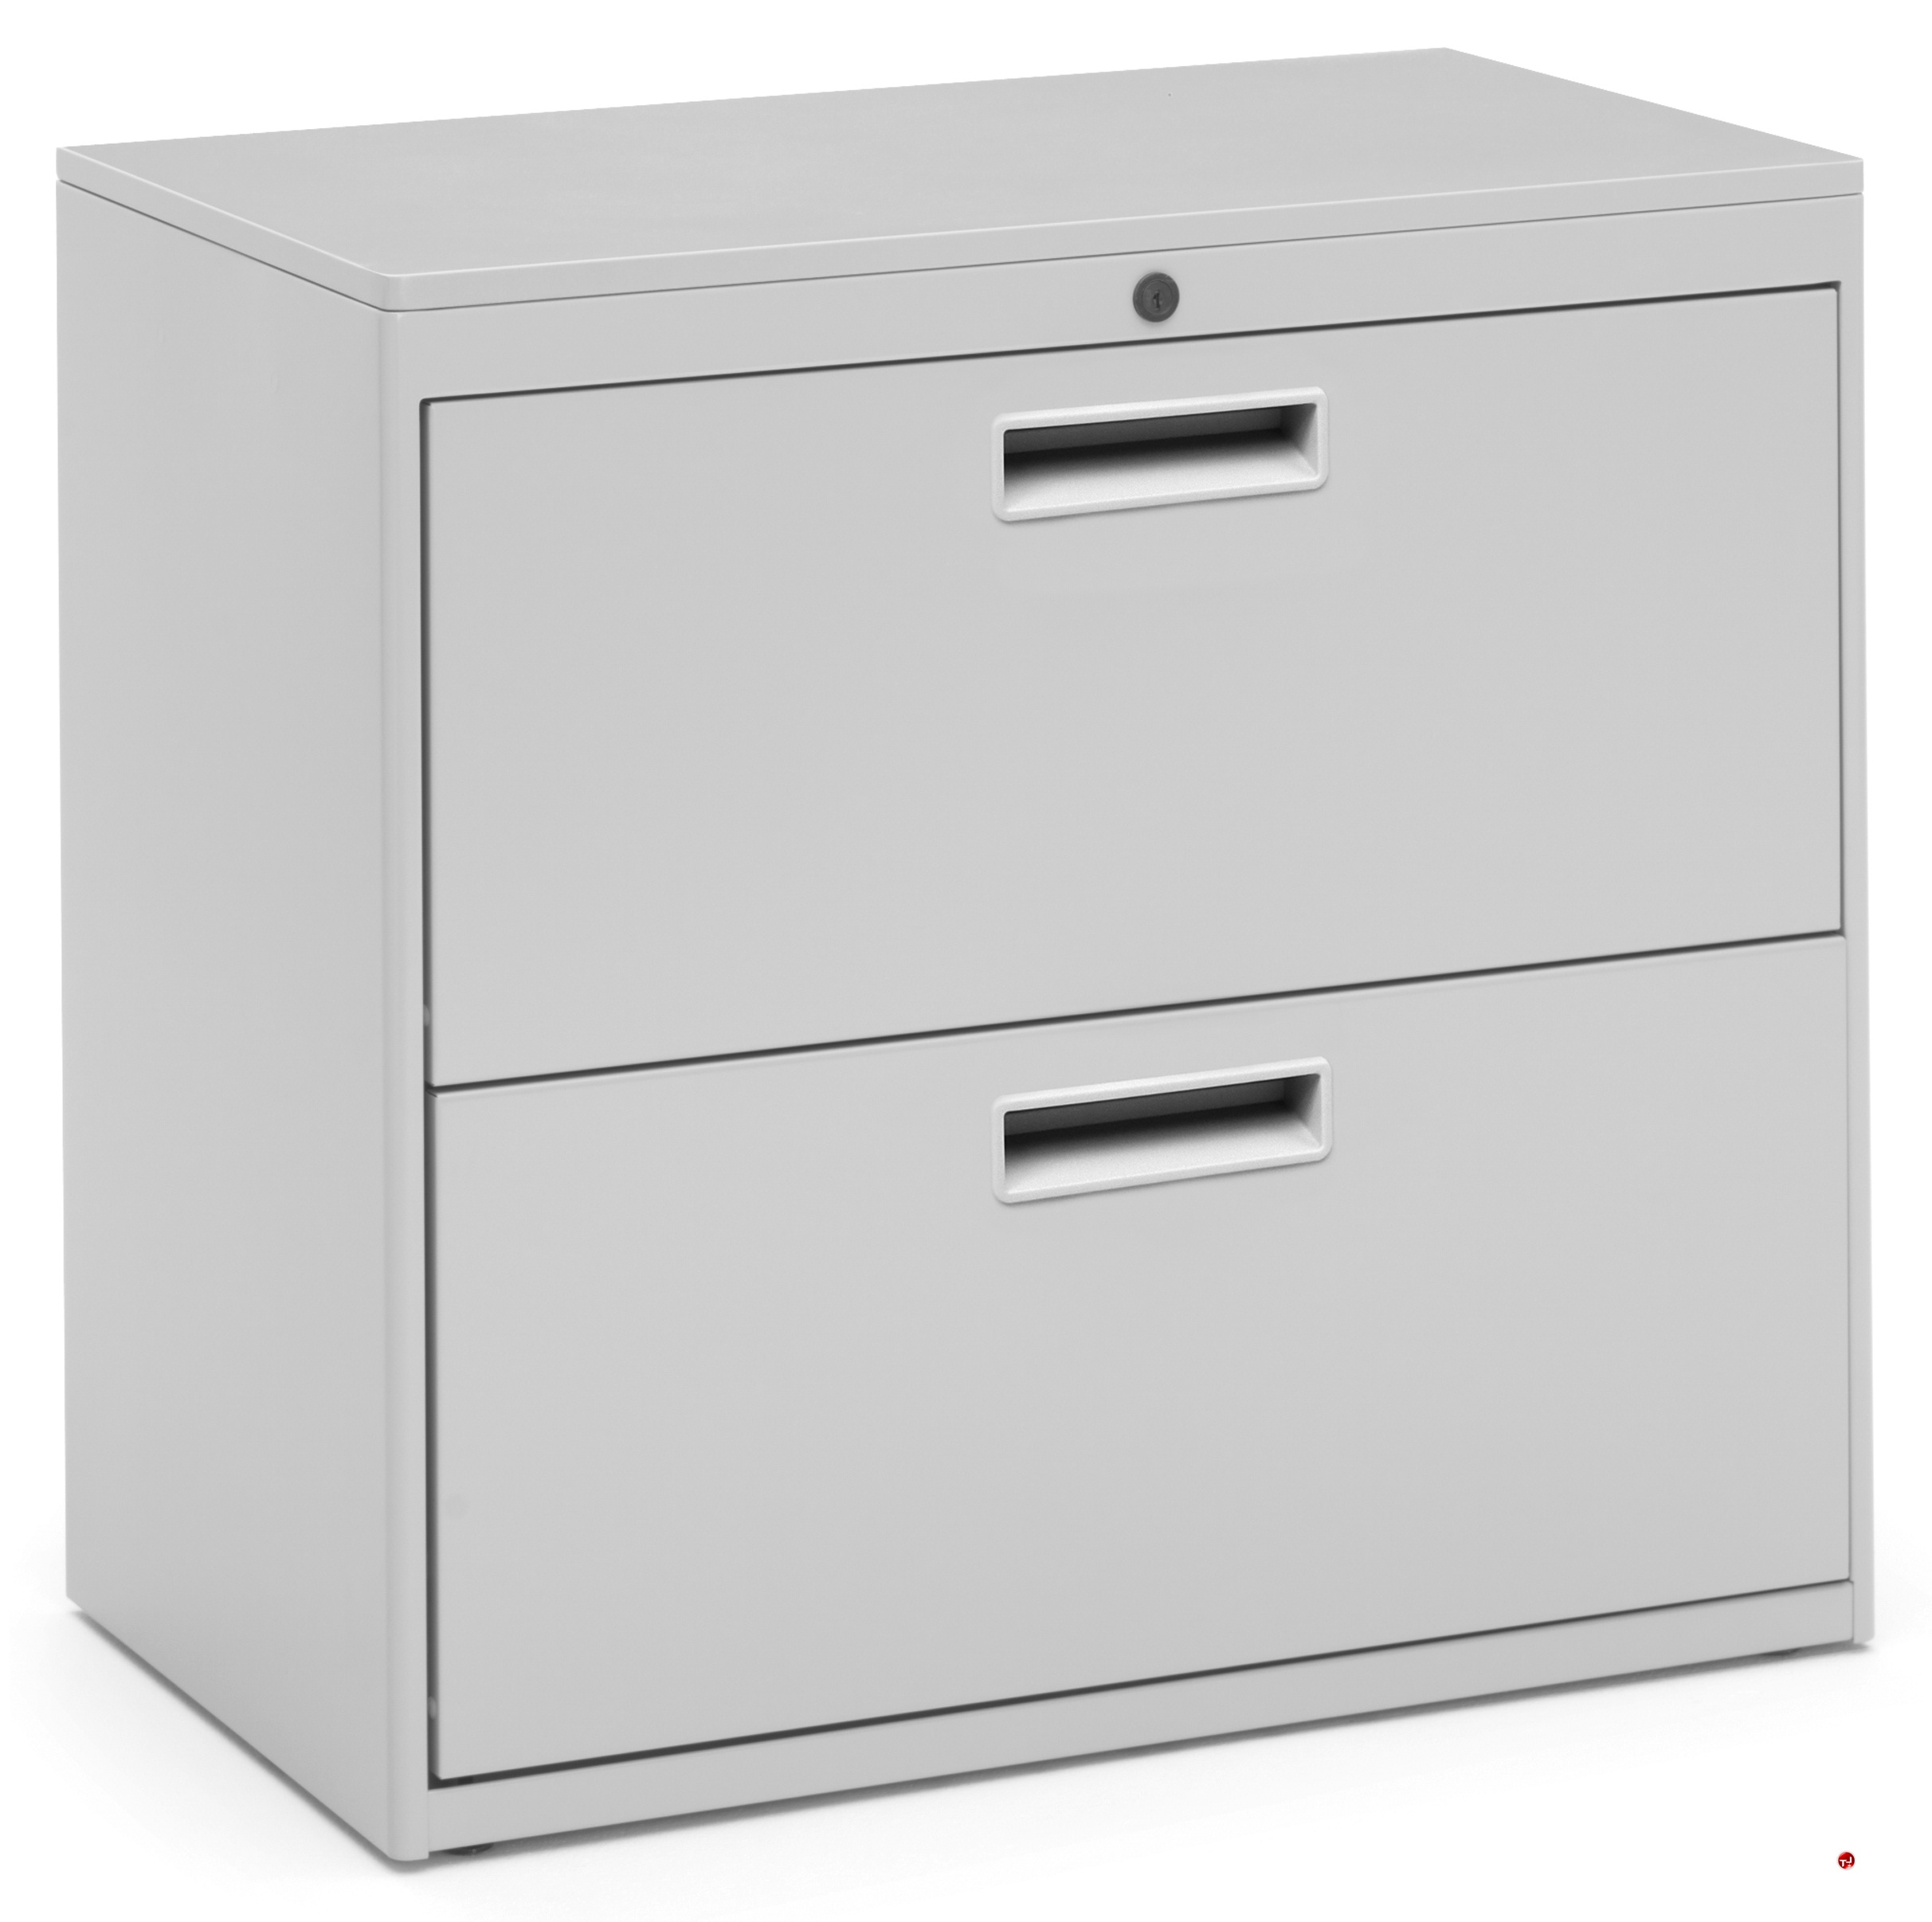 The Office Leader 2 Drawer 30 Quot W Steel Lateral File Cabinet